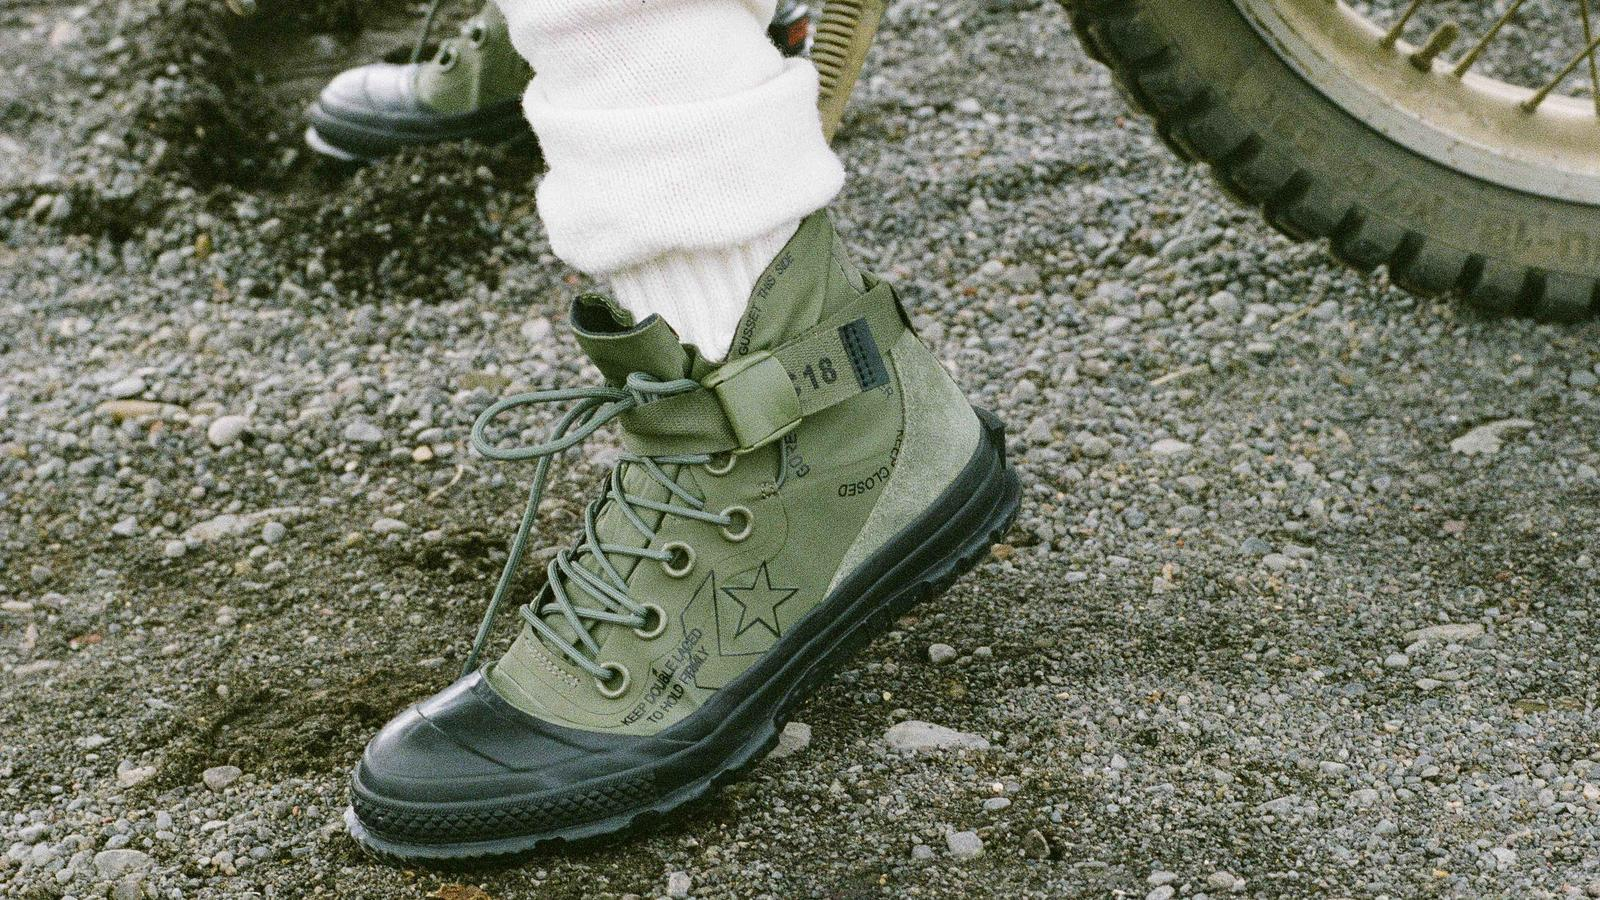 New Converse Mountain Club Capsule Delivers Style and Utility 2